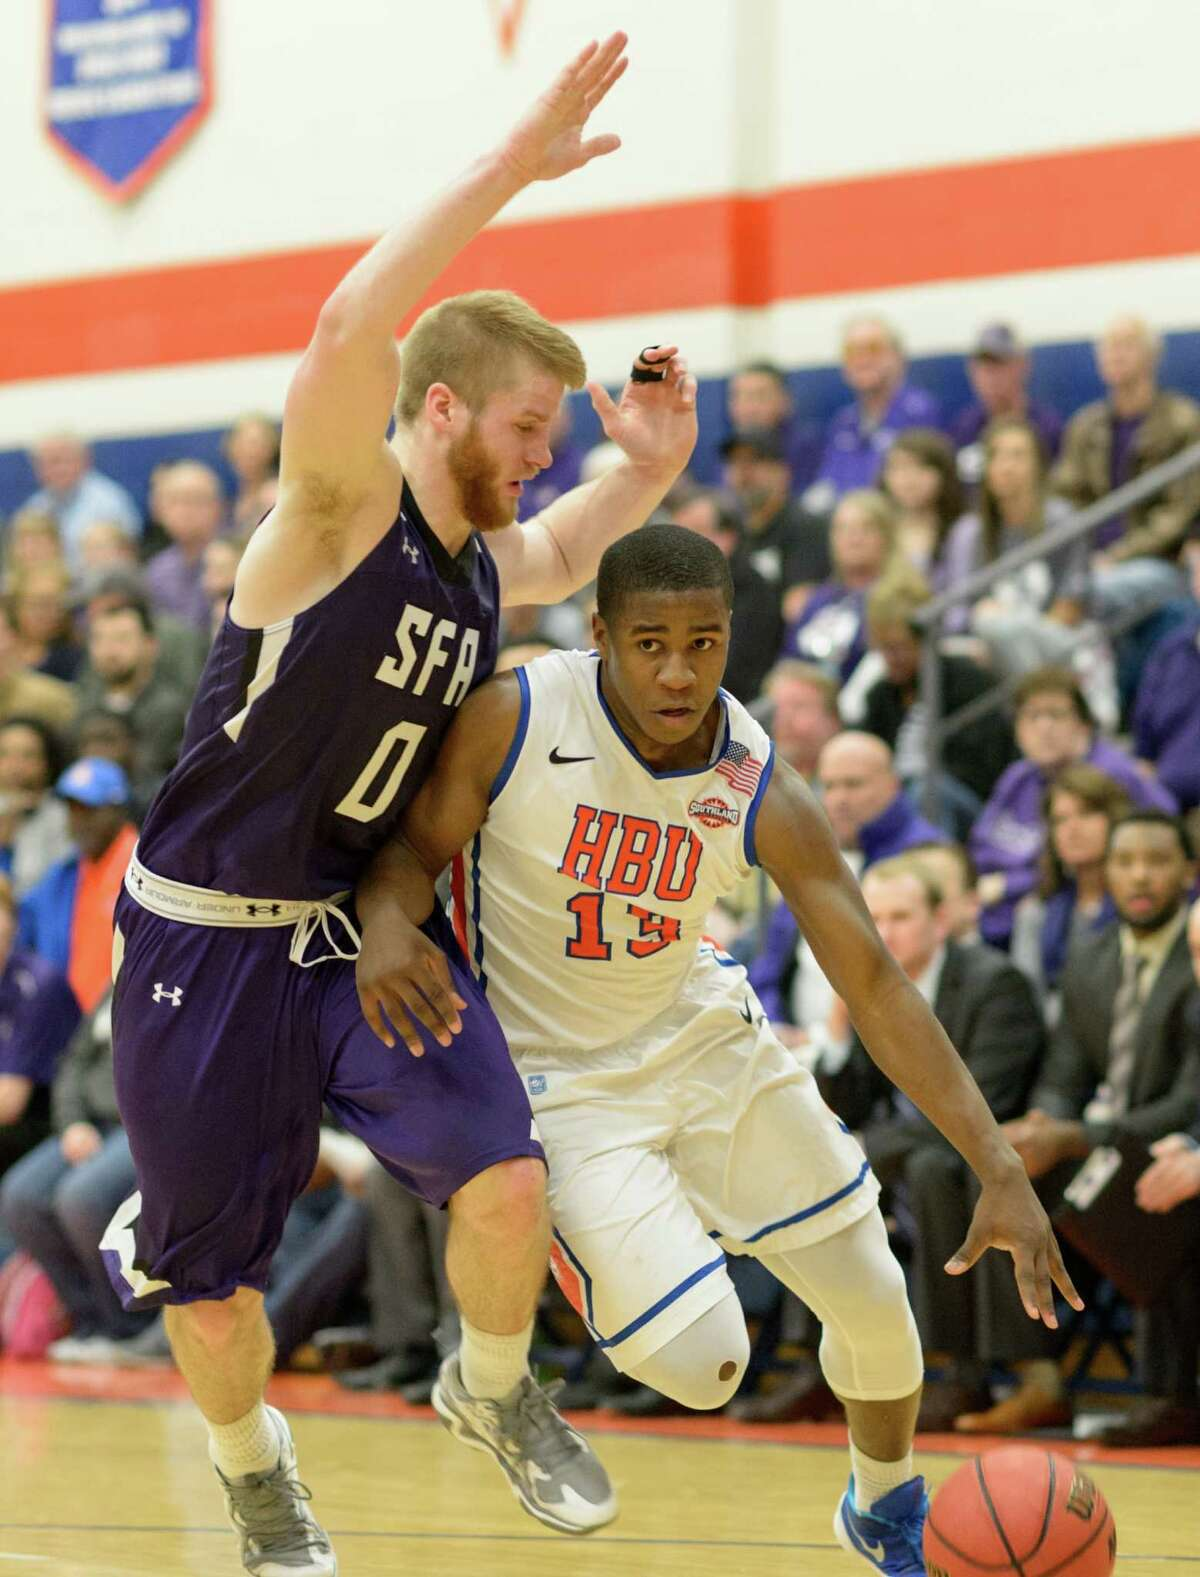 Stephen O'Suji (13) of Houston Baptist University drives to the basket in the first half against the Stephen F. Austin Lumberjacks in a college basketball game on Saturday, February 6, 2016 at Sharp Gym.